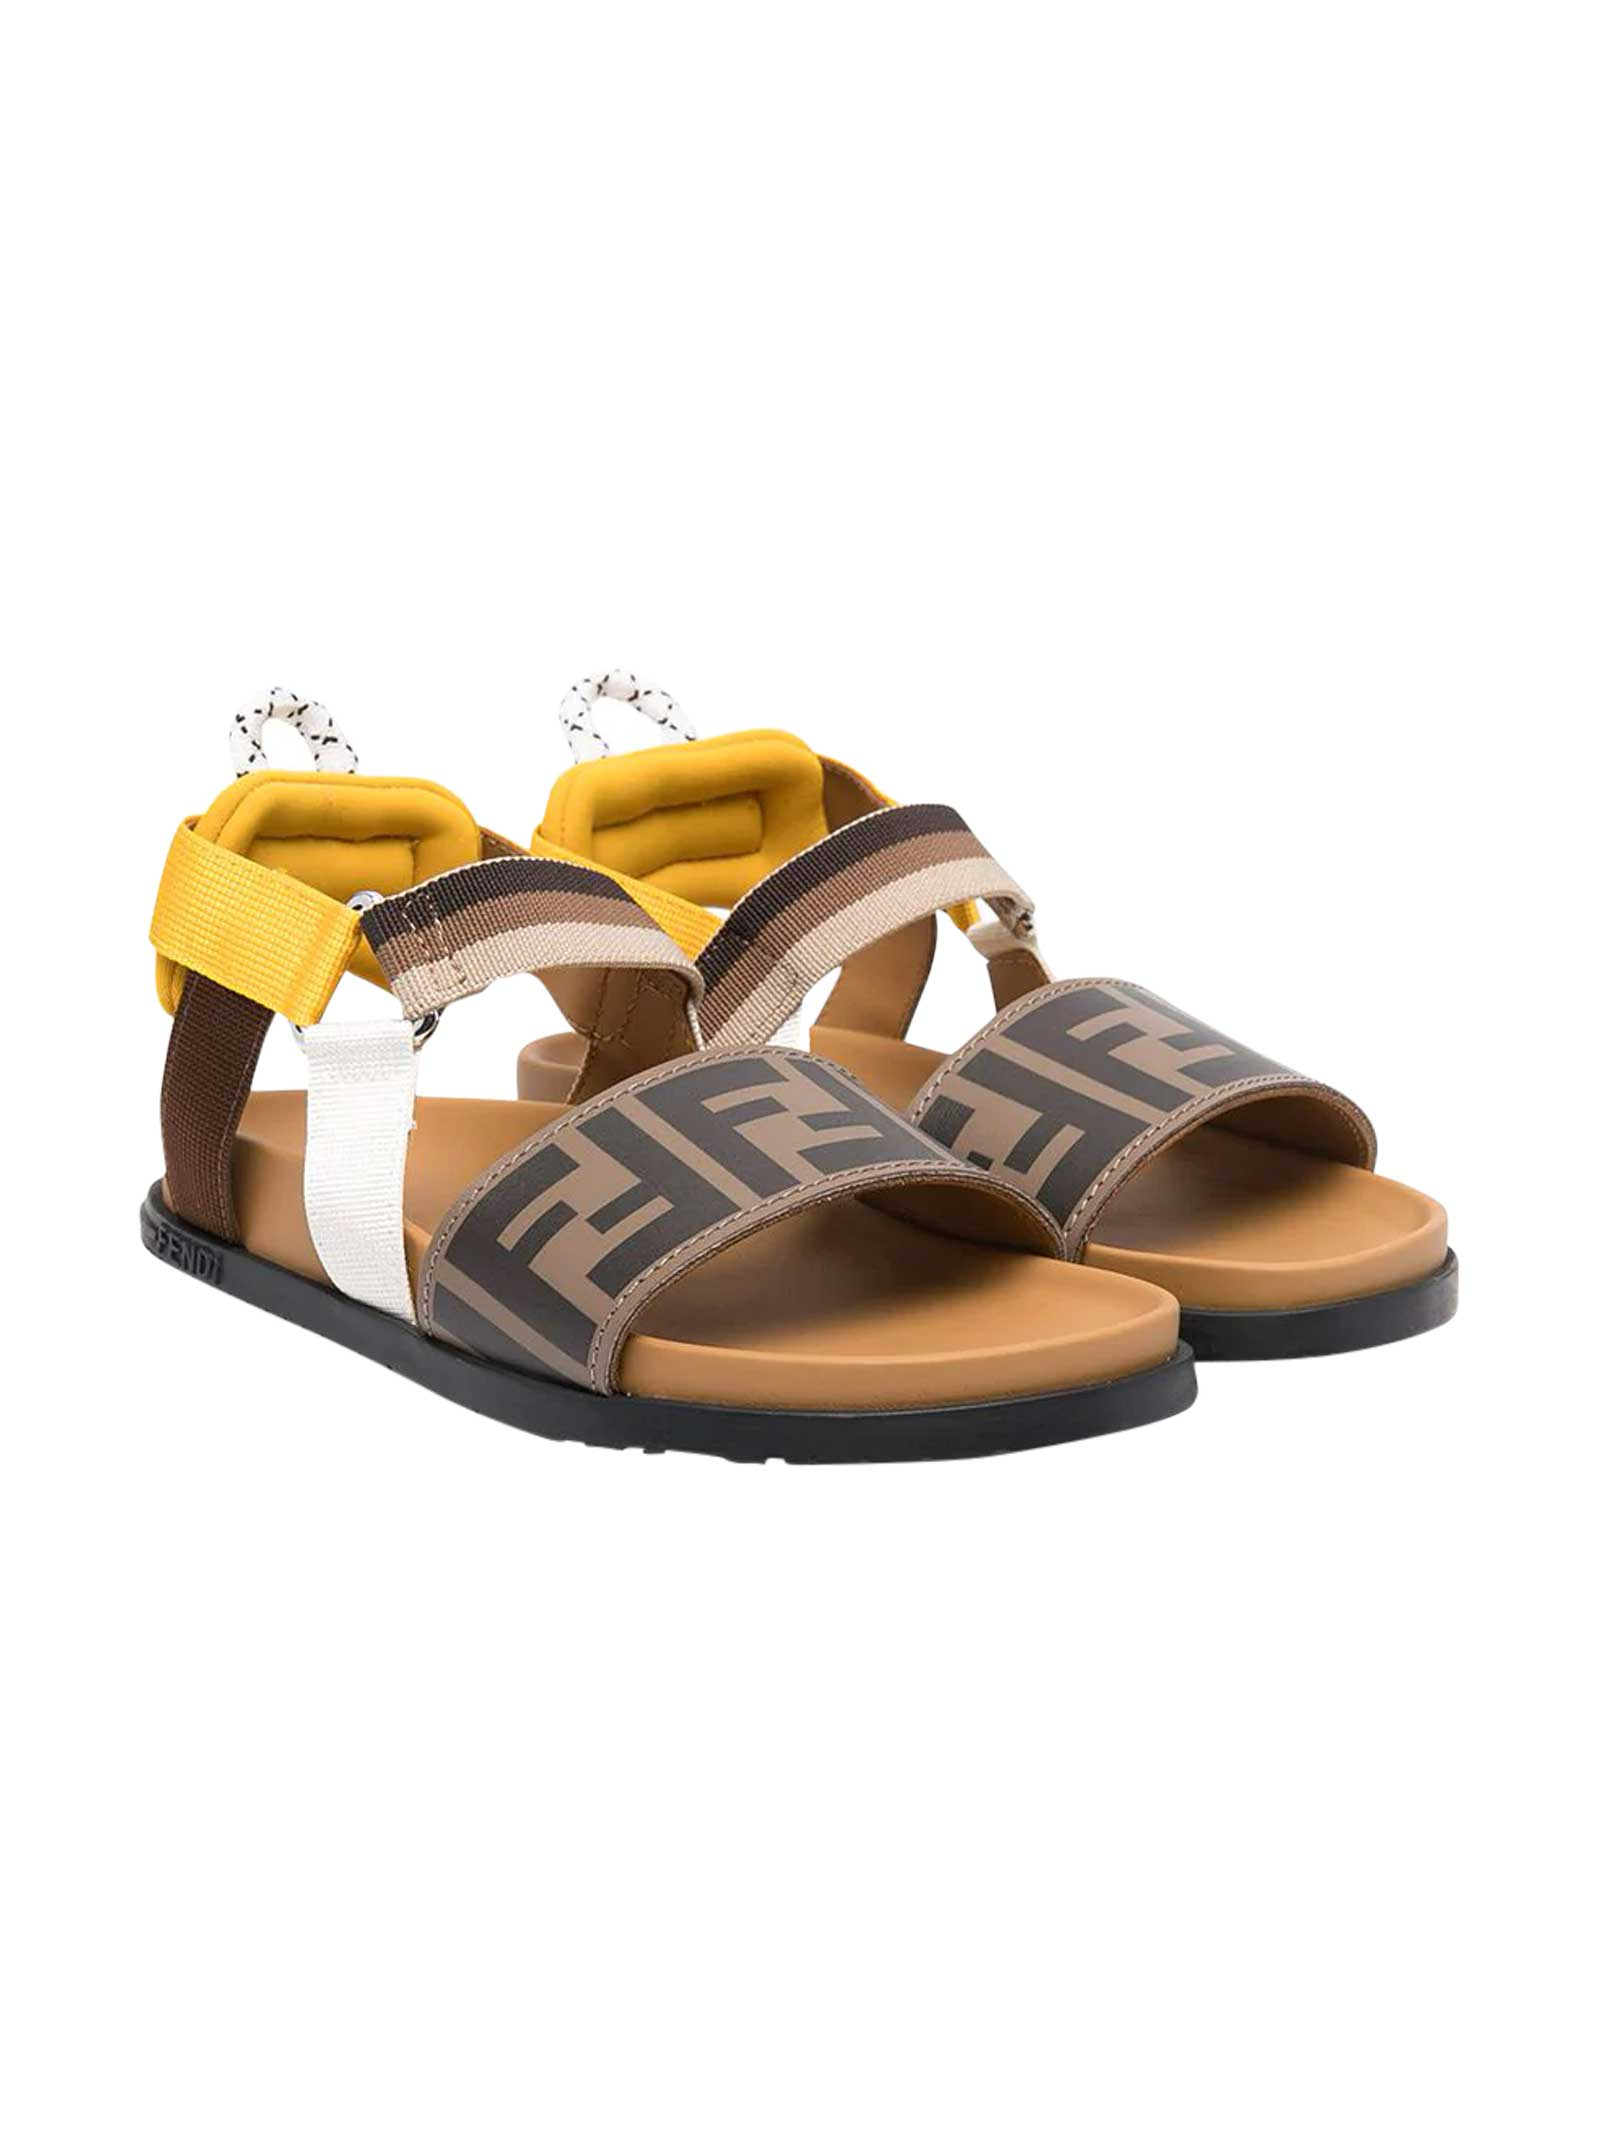 Fendi Leathers SANDALS WITH LOGO TEXTURE